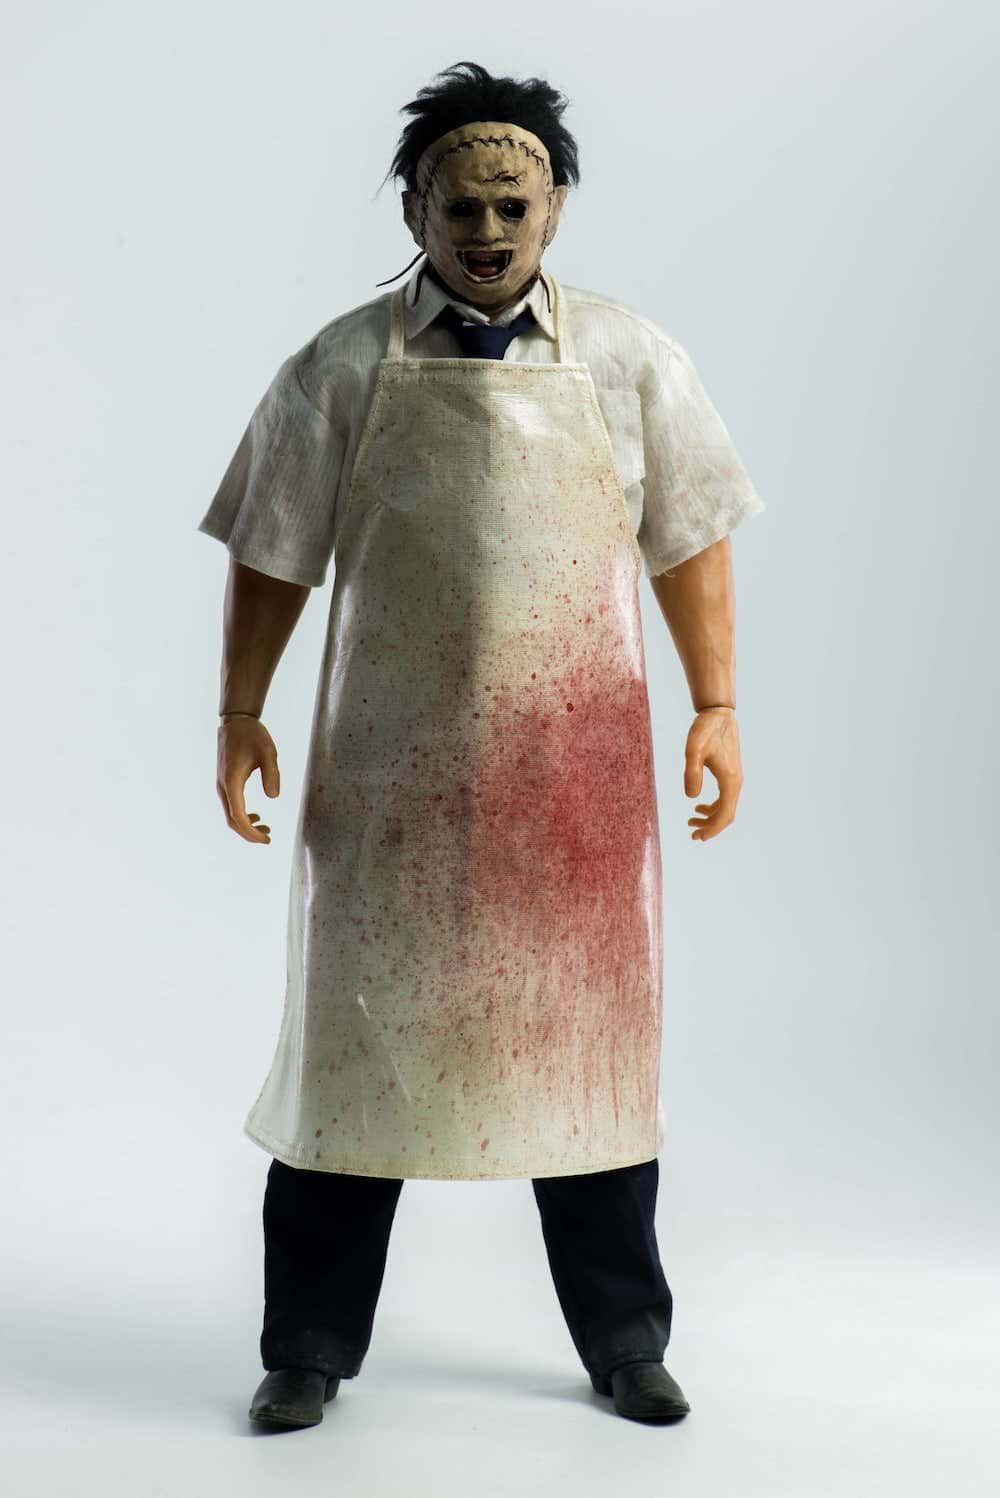 LEATHERFACE FIGURA 32 CM THE TEXAS CHAINSAW MASSACRE 1/6 SCALE COLLECTIBLE FIGURE